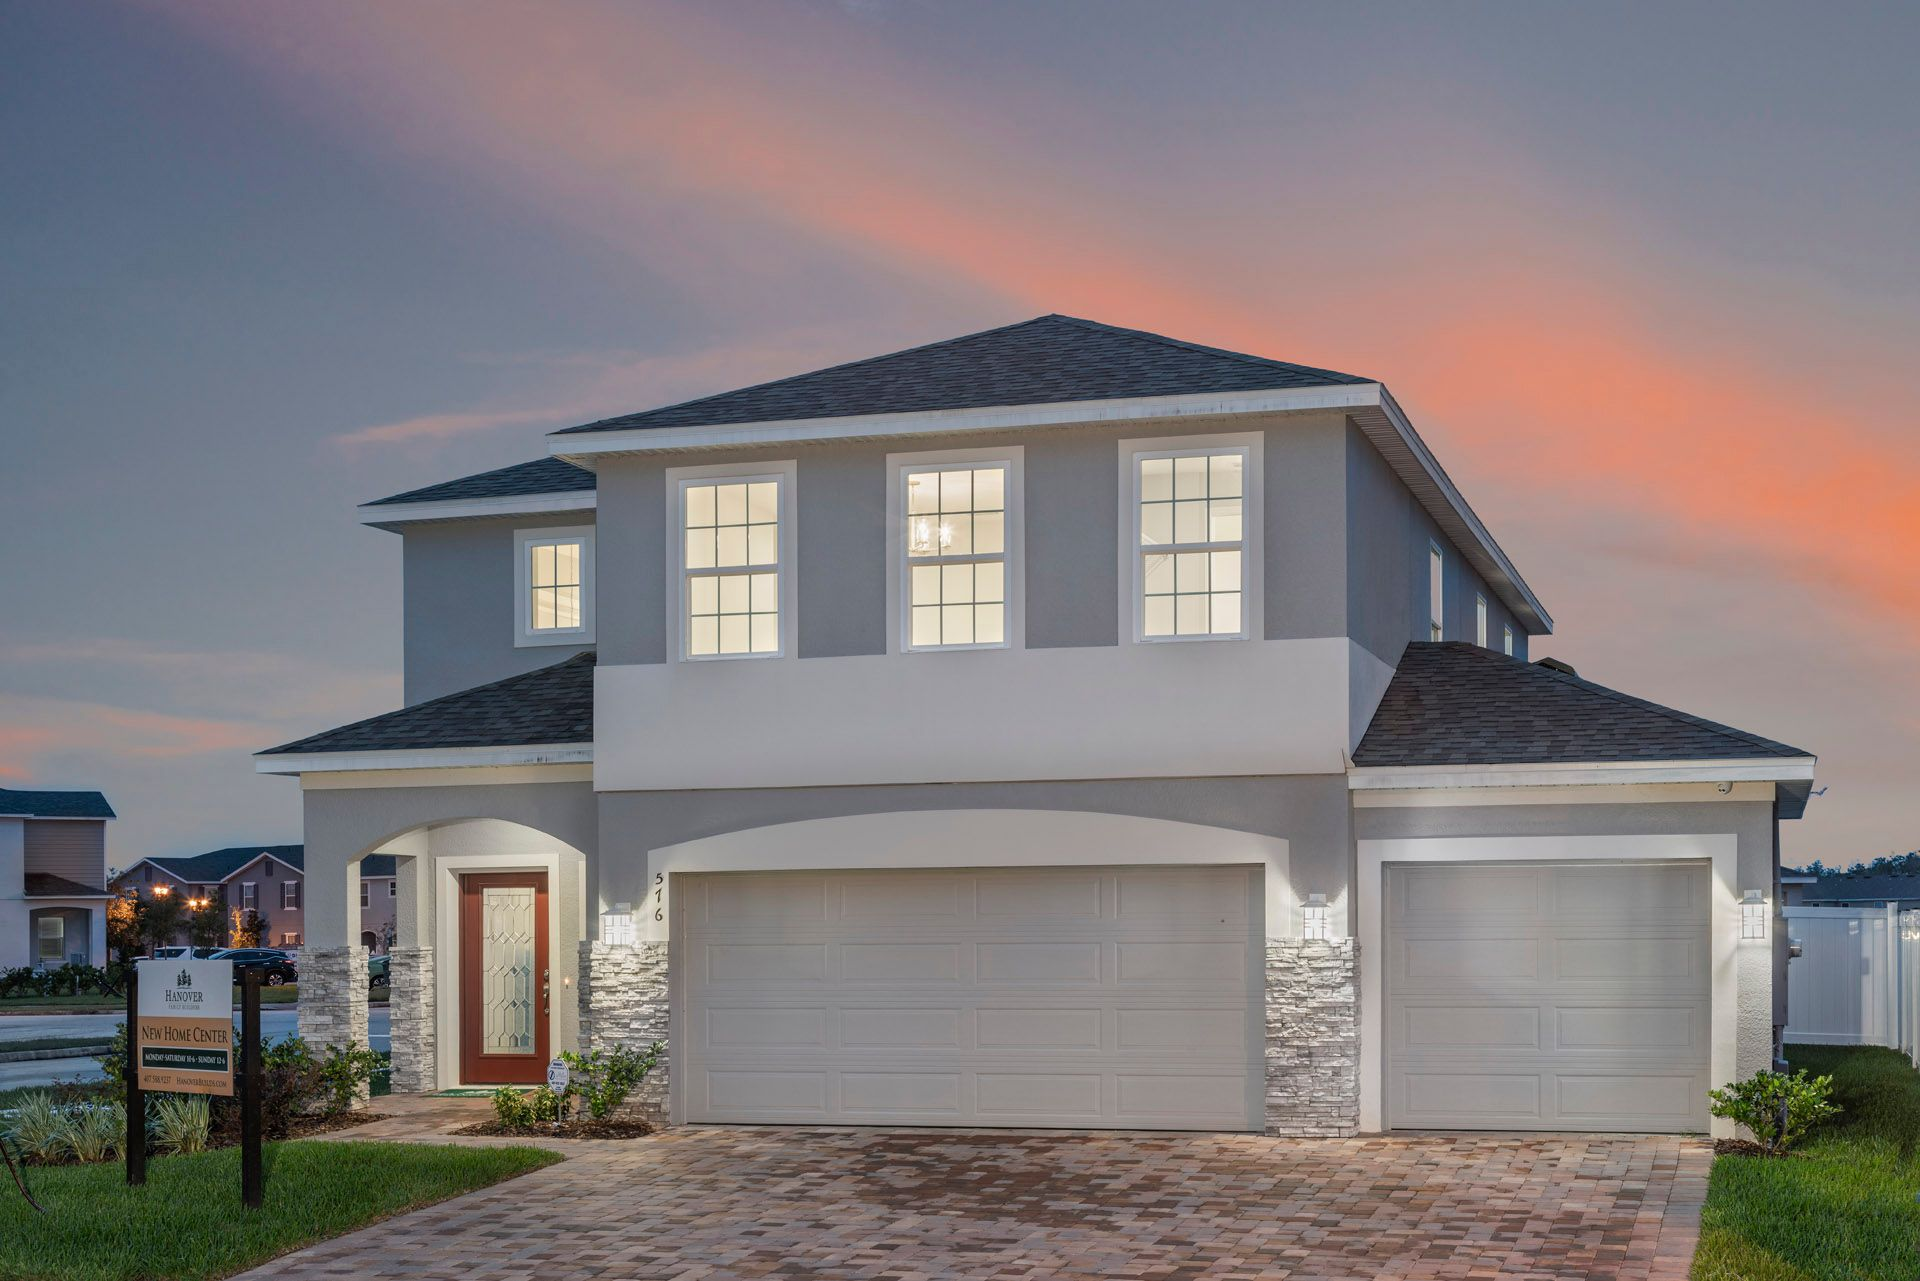 Sanibel Exterior, Available to Build in Preservation Pointe:Model Home in Nearby Williams Preserve